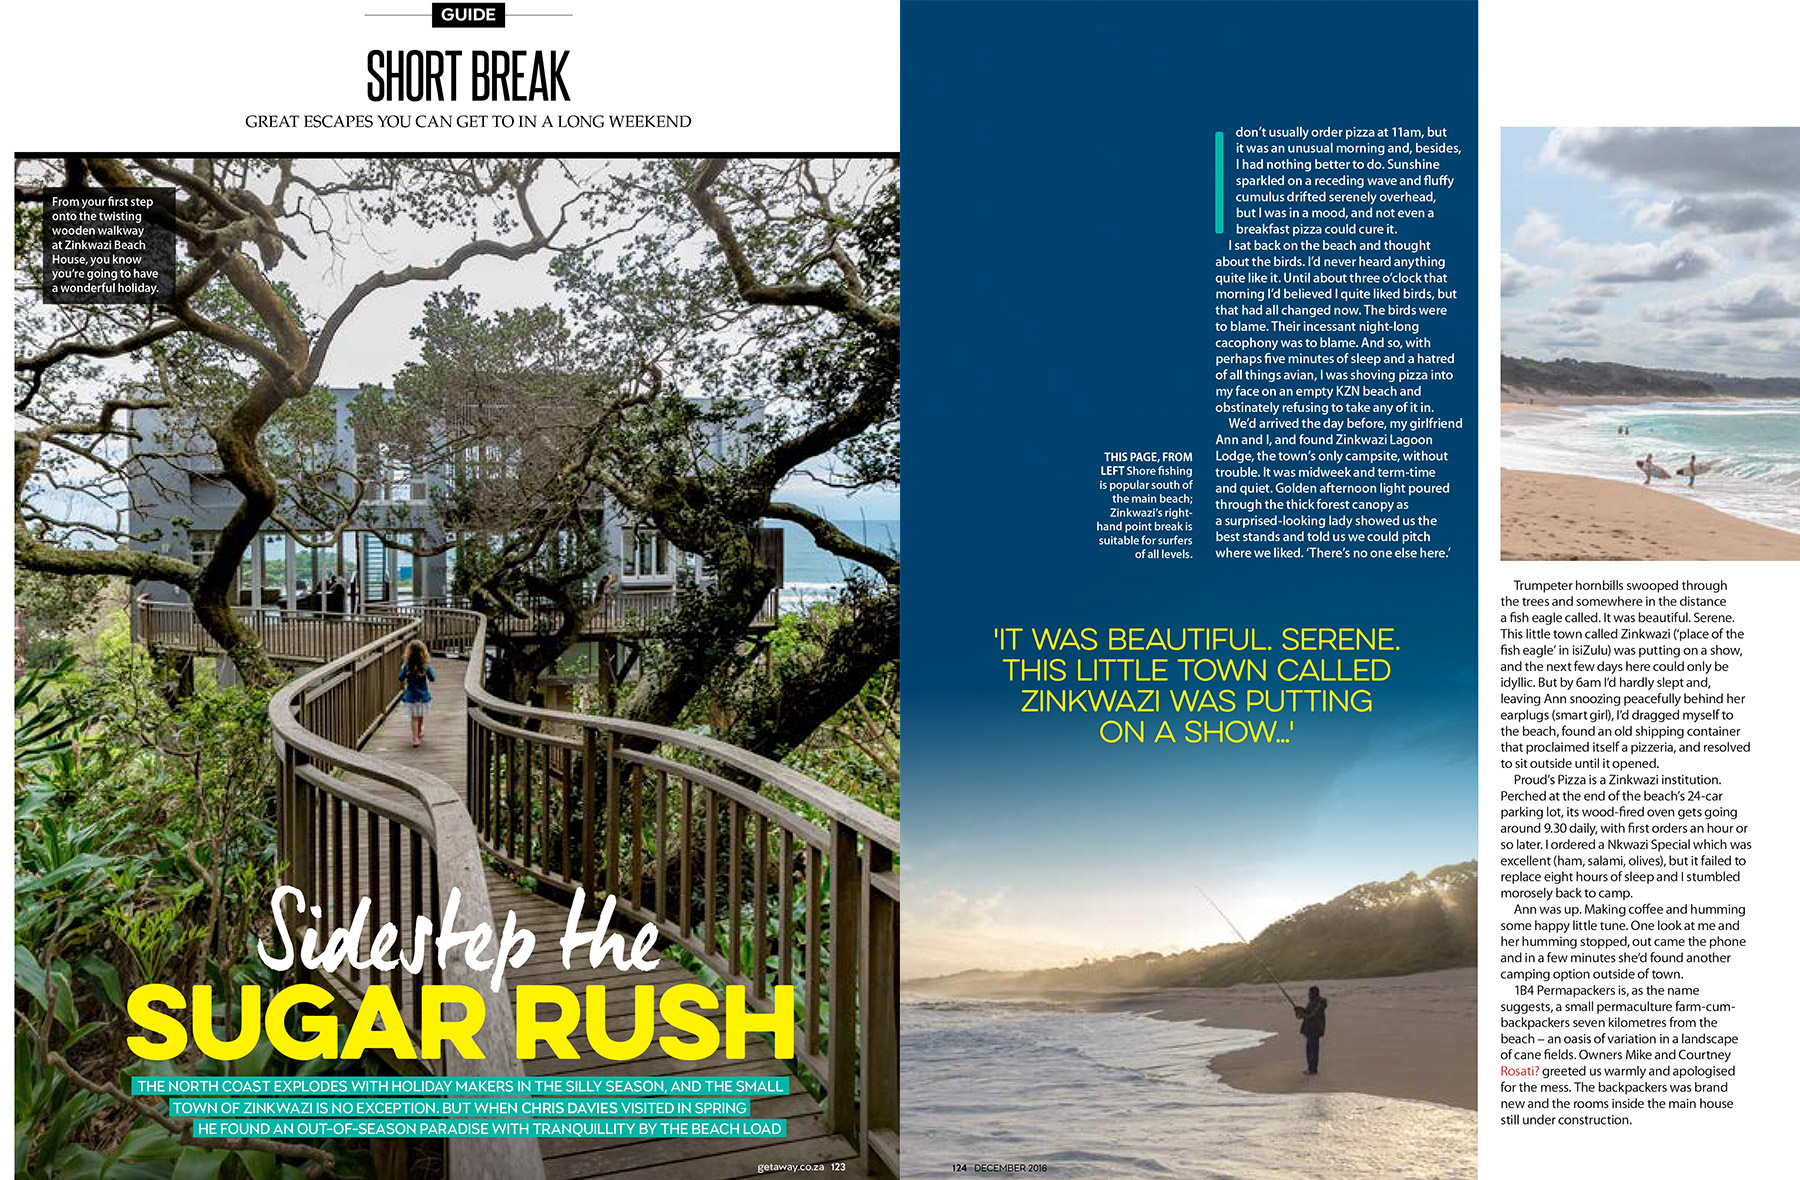 Getaway Magazine - A guide to Zinkwazi - beach-holiday paradise on South Africa's North Coast.